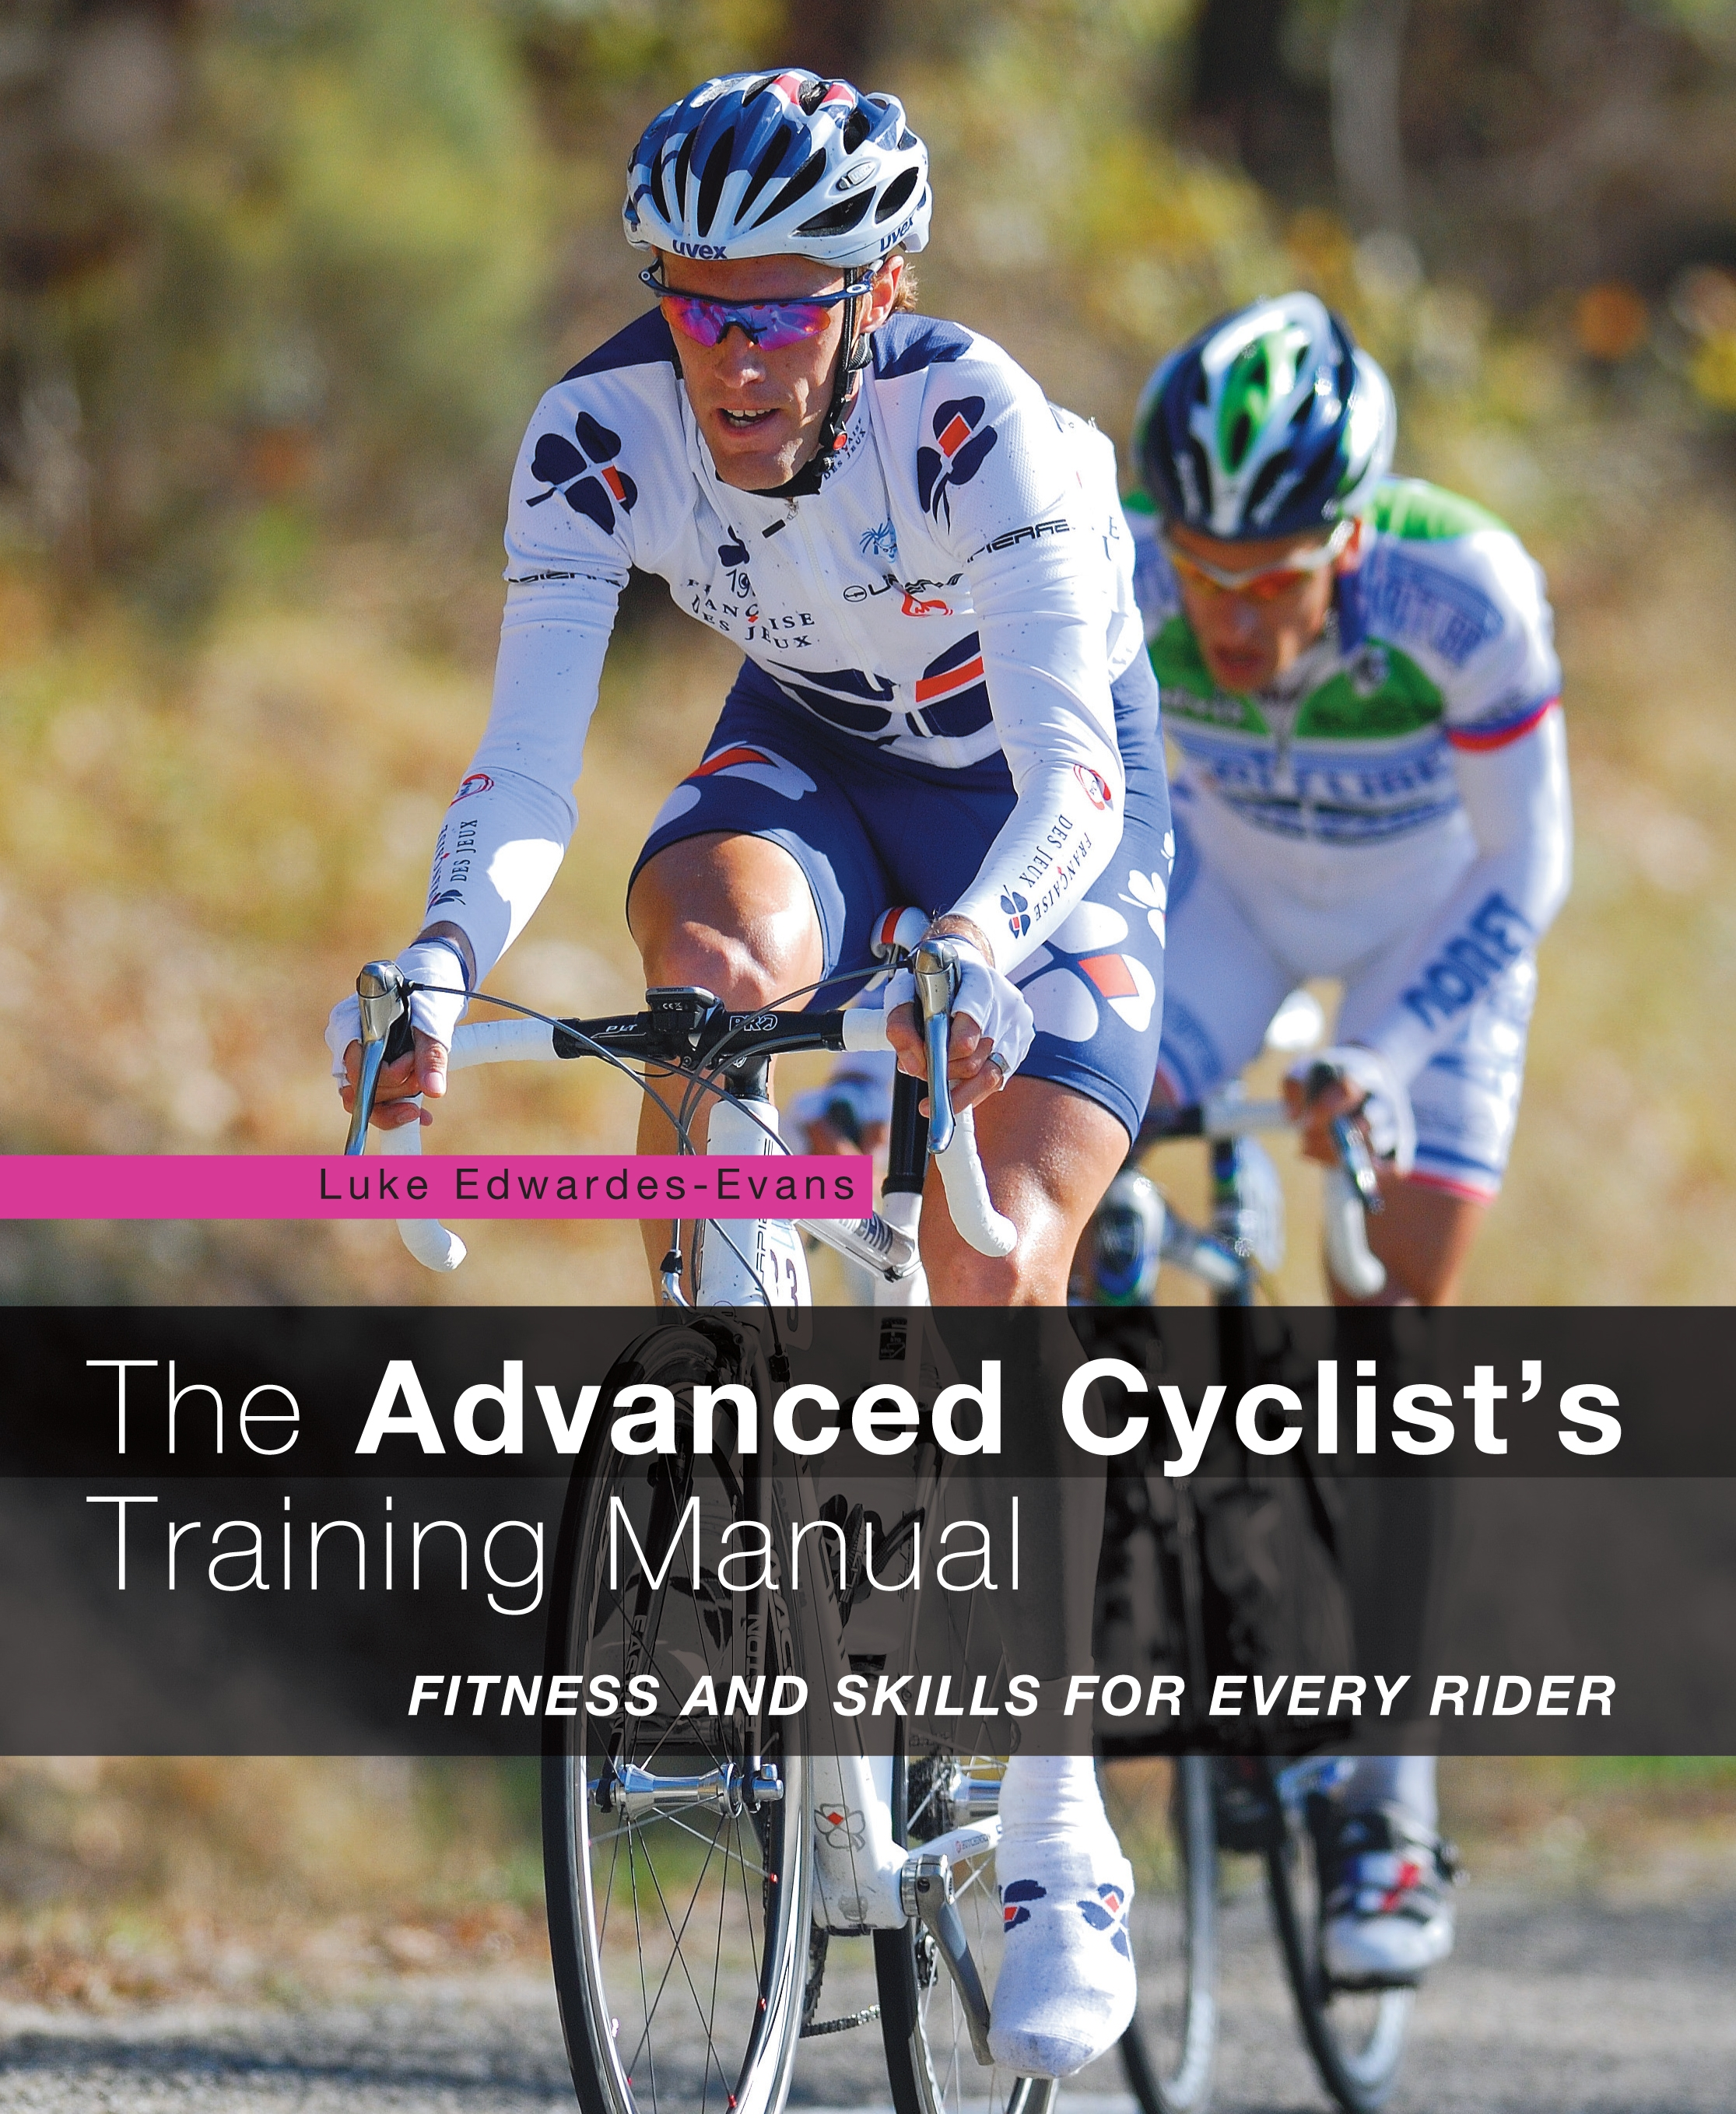 The Advanced Cyclist's Training Manual Fitness and Skills for Every Rider